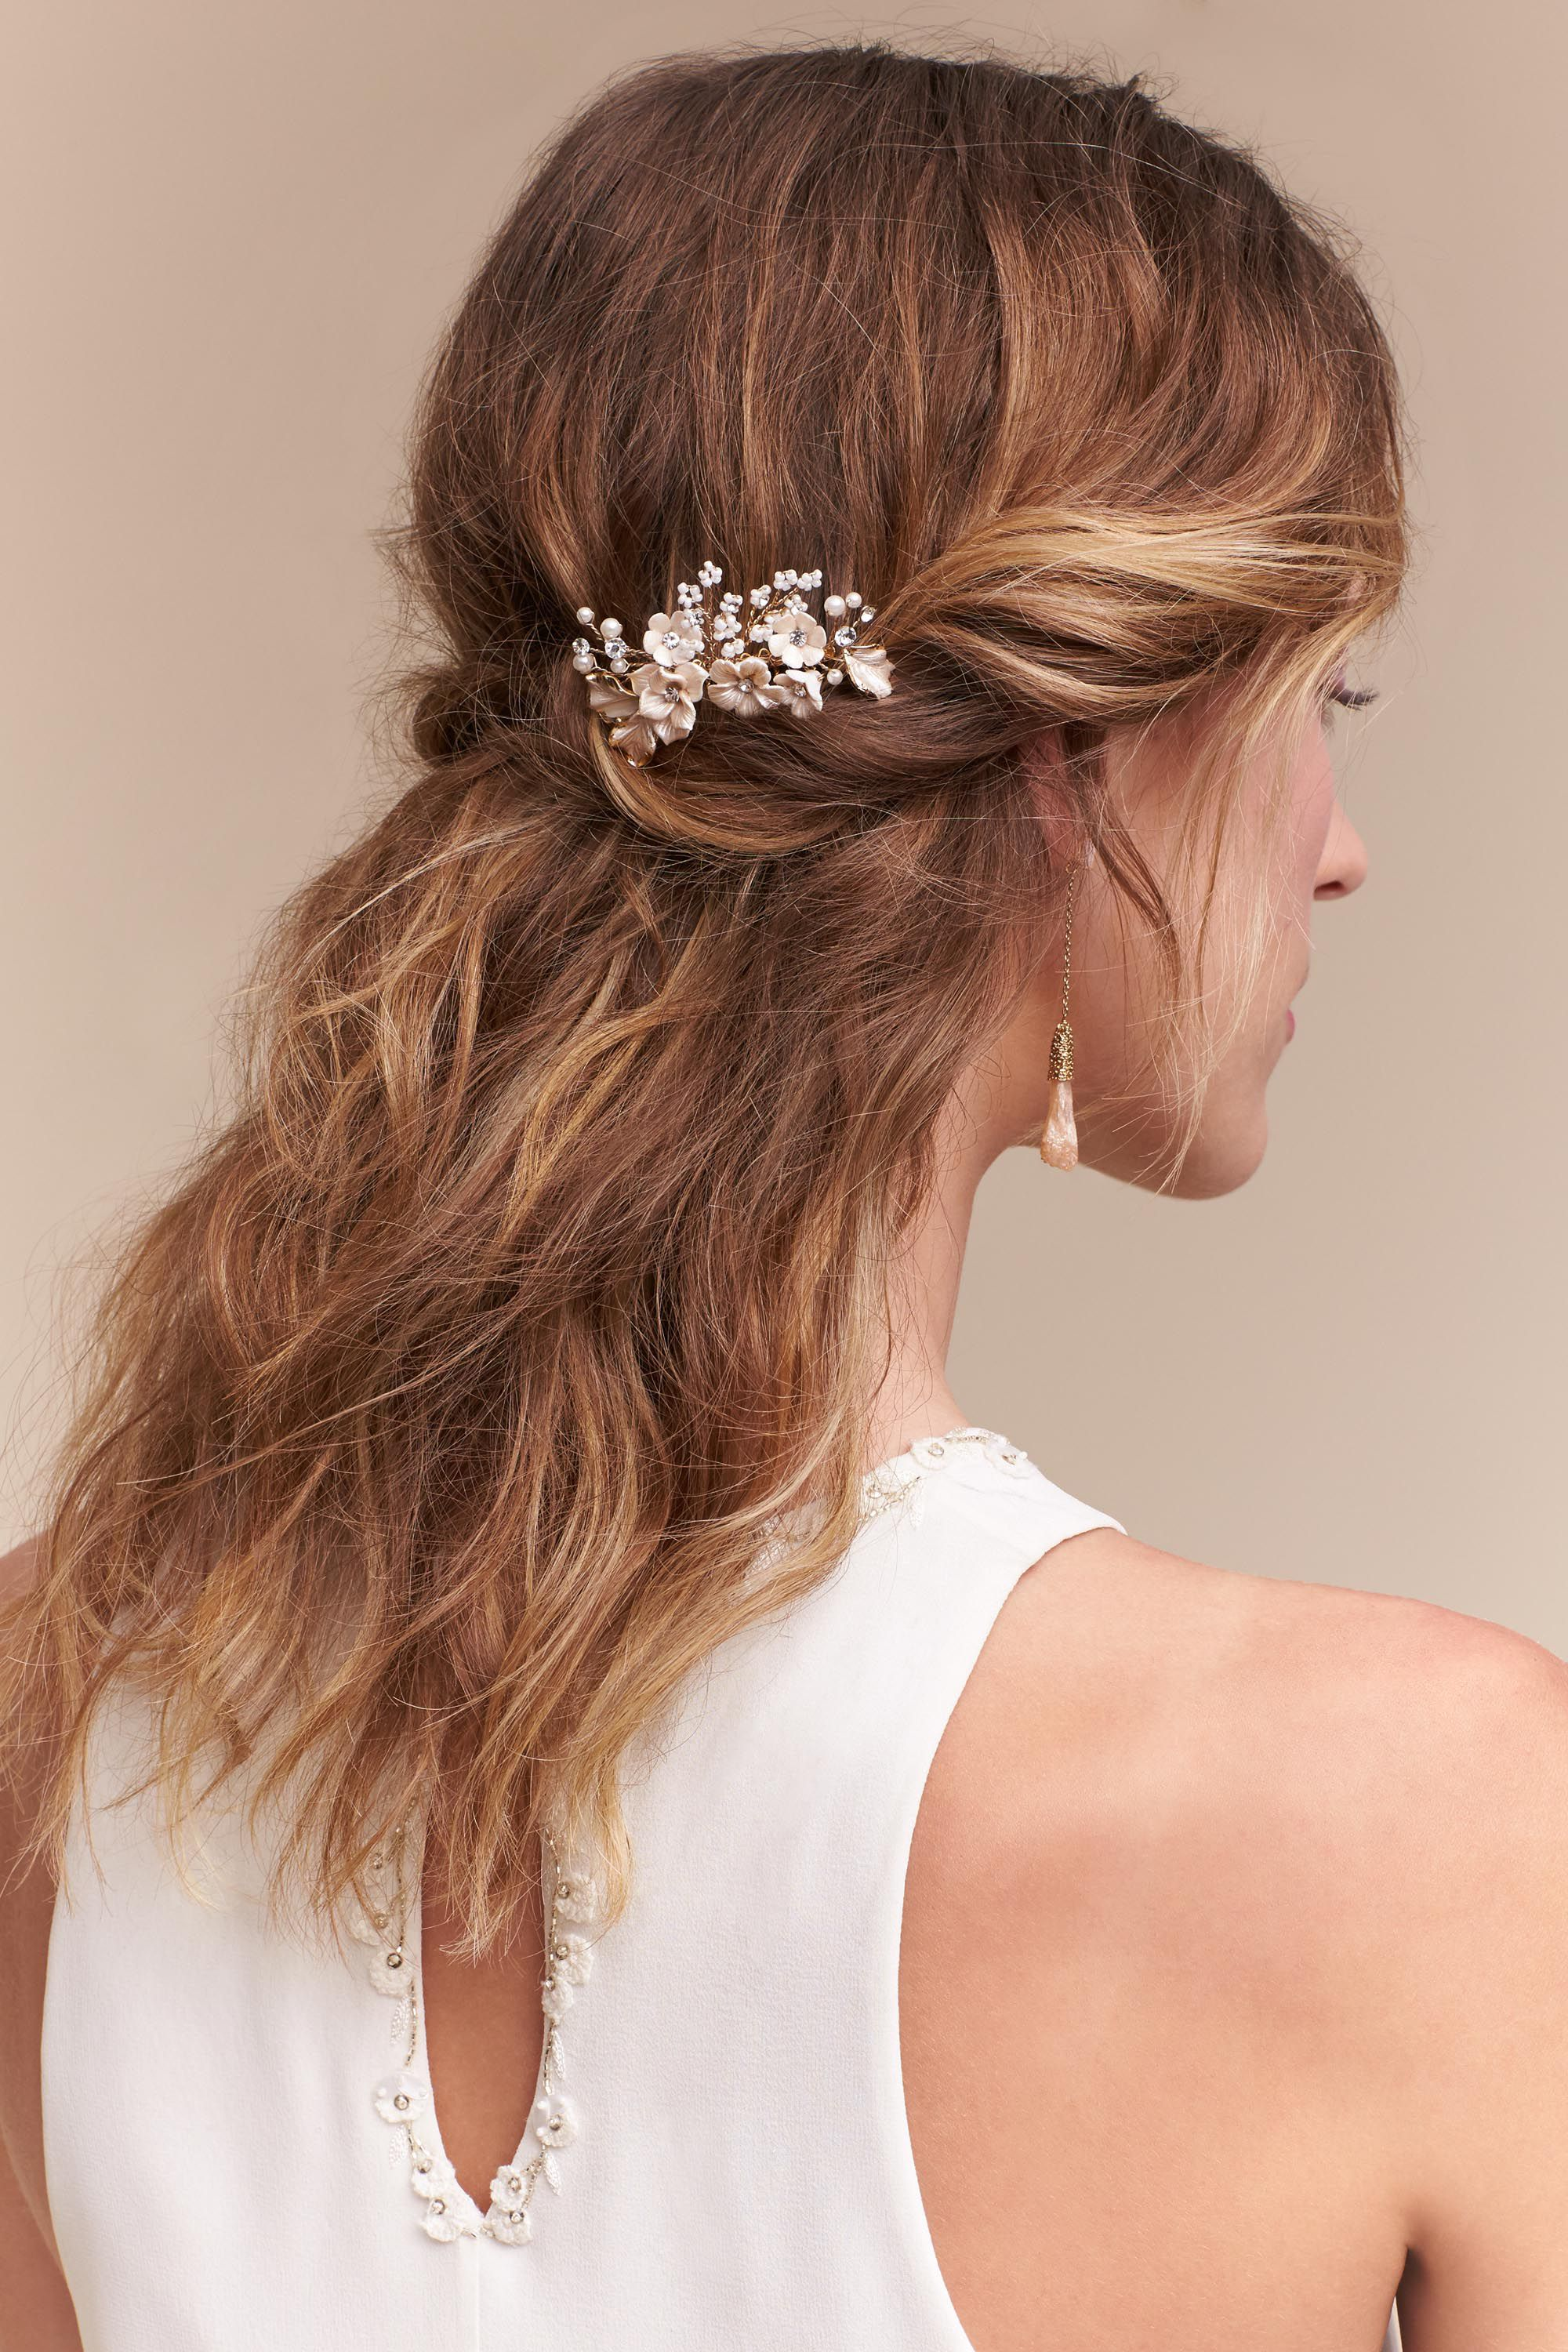 Bursting Blooms Hair Comb